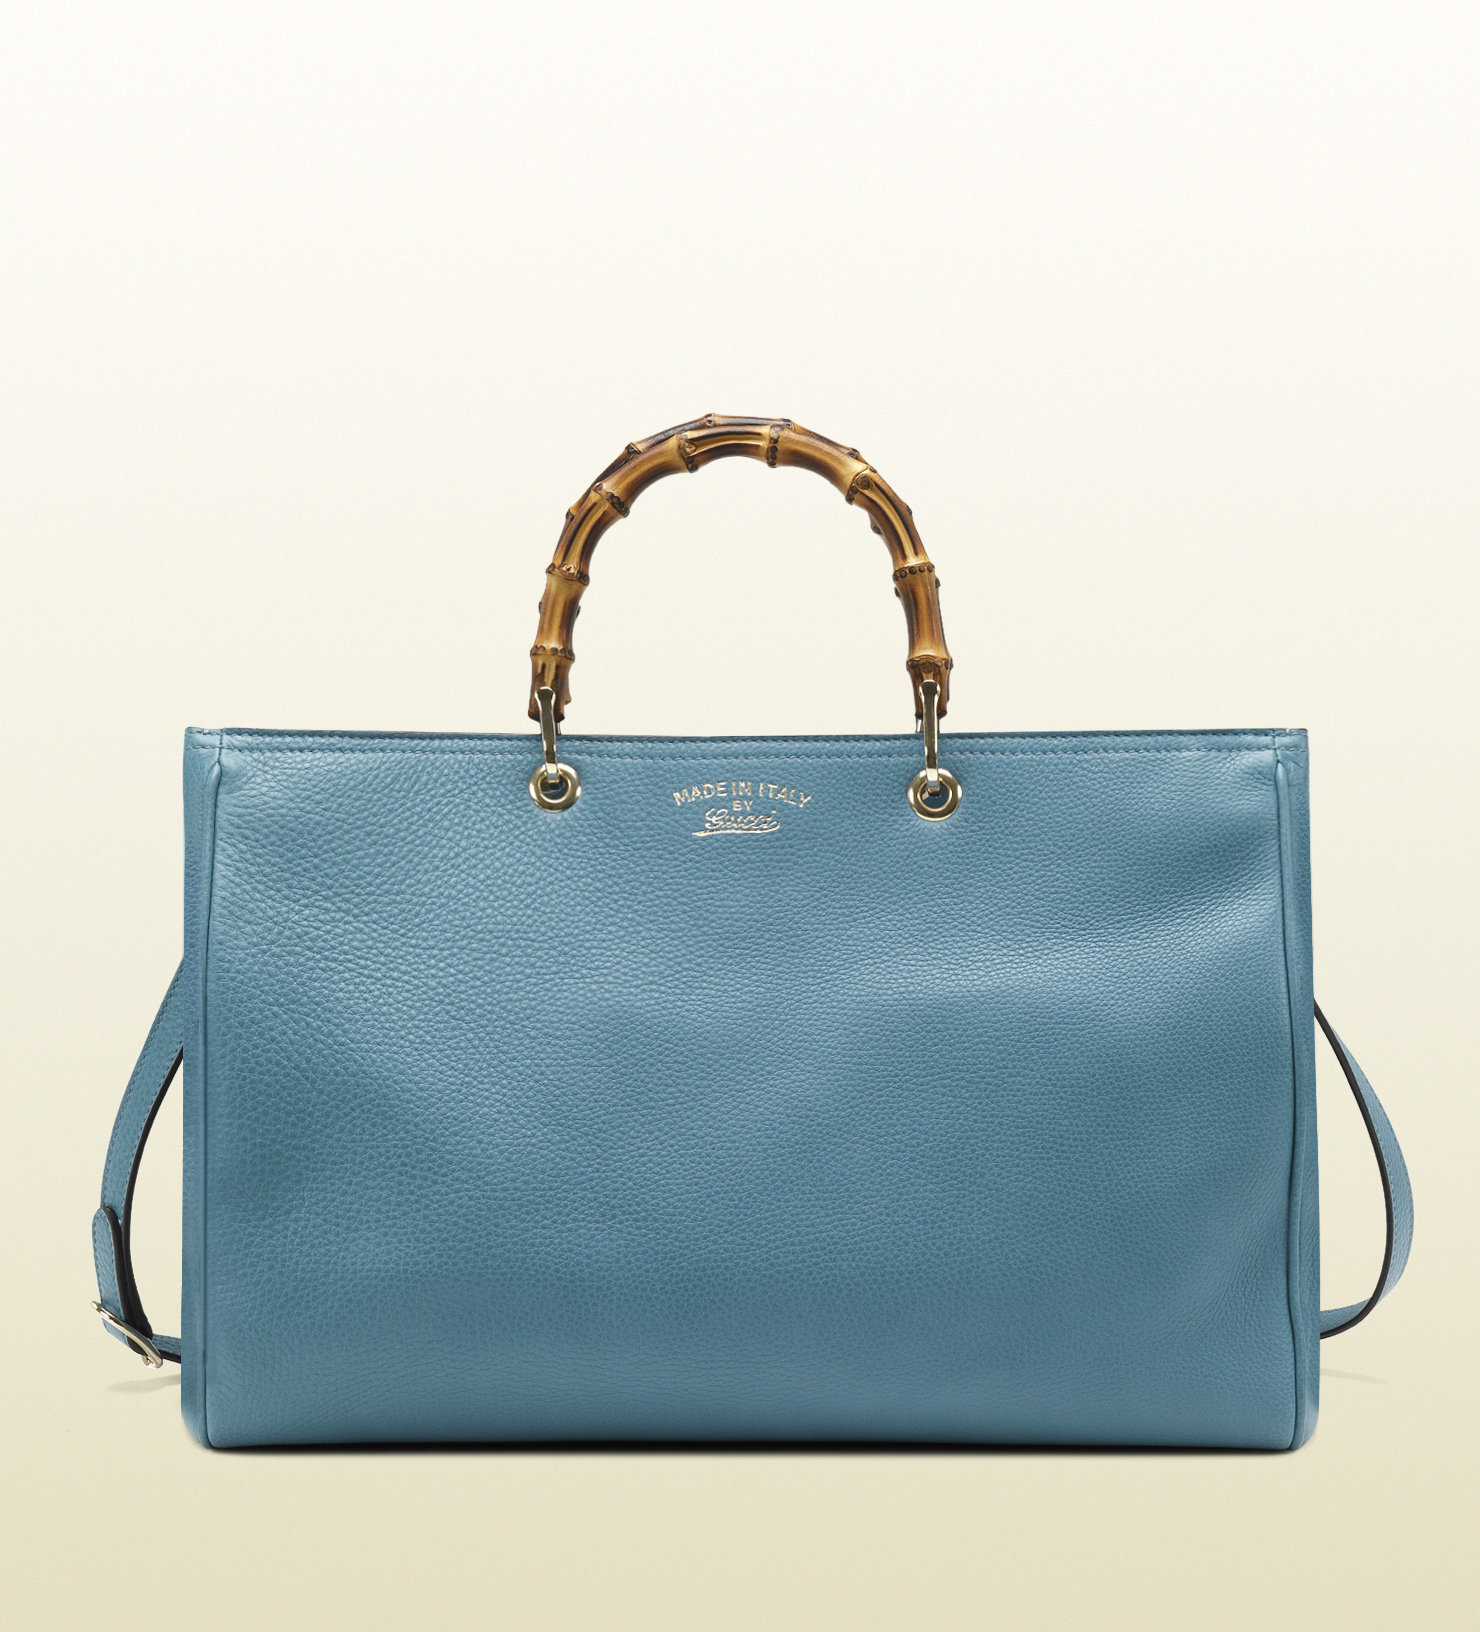 lyst gucci bamboo shopper light blue leather tote in blue. Black Bedroom Furniture Sets. Home Design Ideas